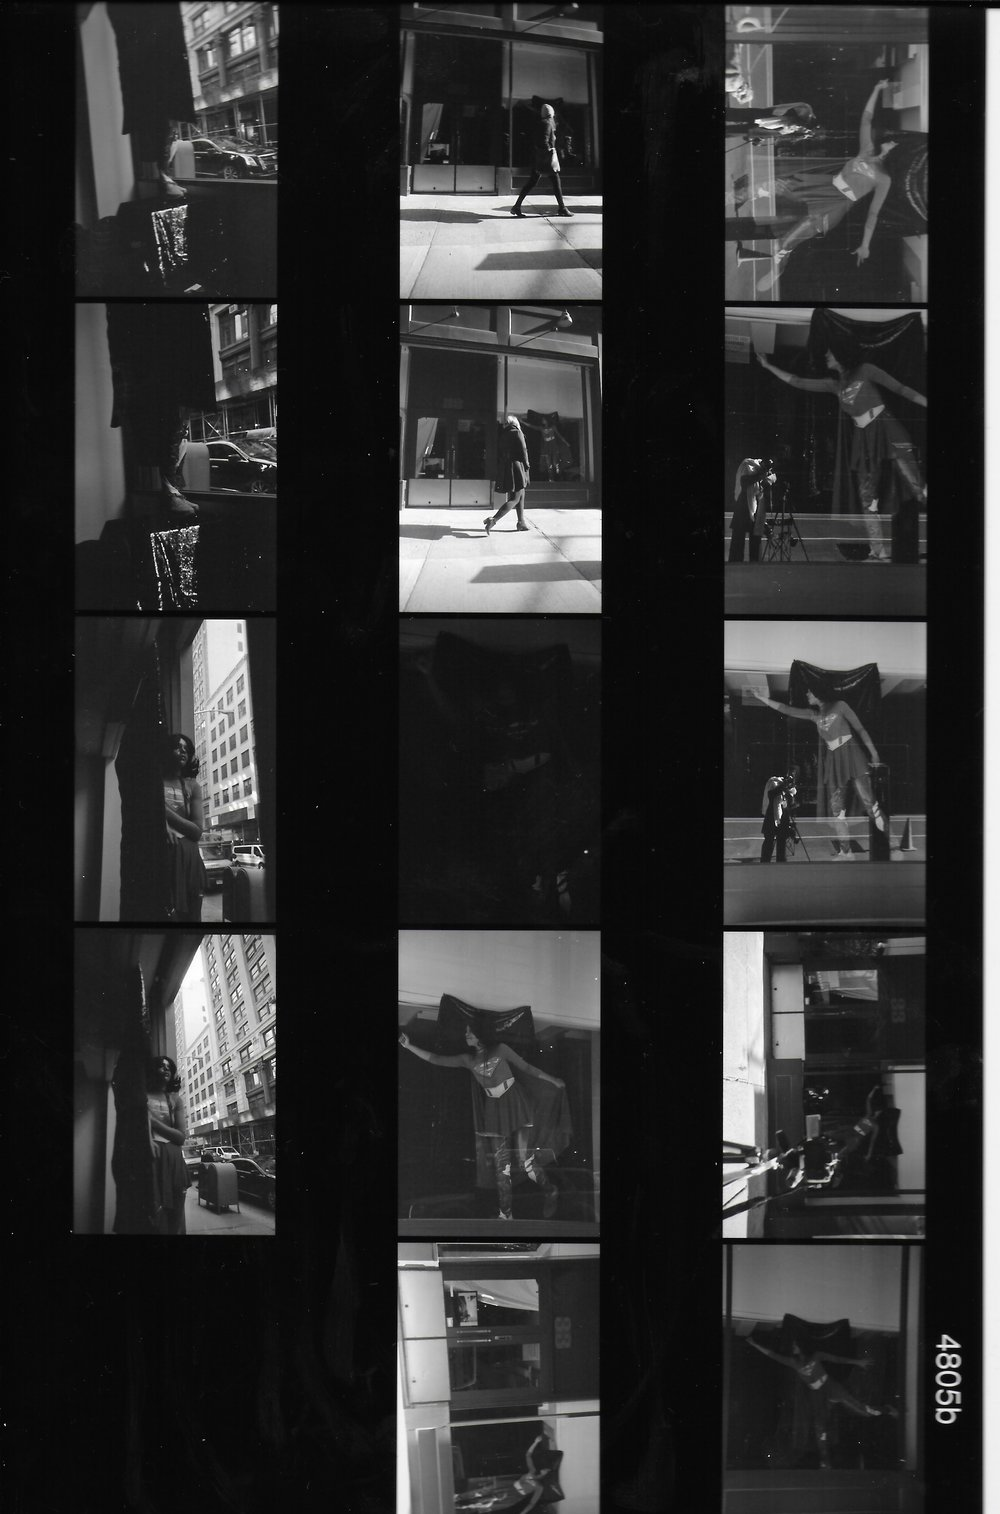 Haleigh Nickerson: Untitled Installation (2018), #33w17, New York, NY    Photograph by Cali D. Kurlan © 35mm black and white contact sheet scan